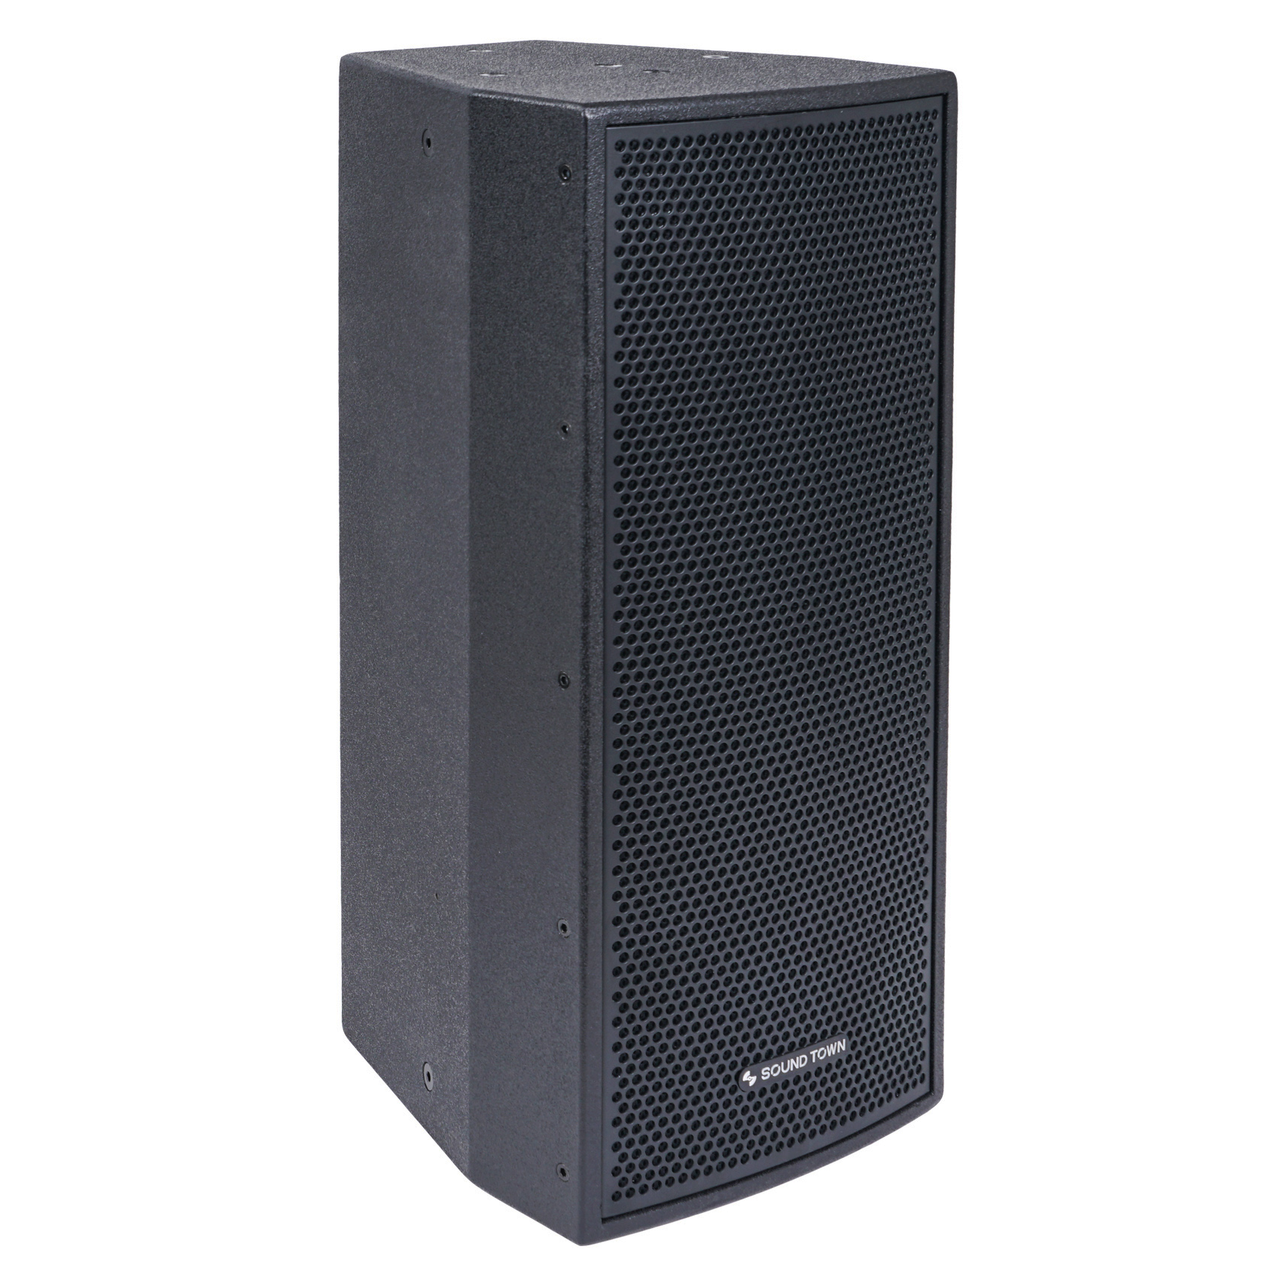 "CARME Series Dual 8"" 600W 2-Way Professional PA DJ Speaker, Black with Compression Driver for Installation, Live Sound, Karaoke, Bar, Church (CARME-208BV2)"